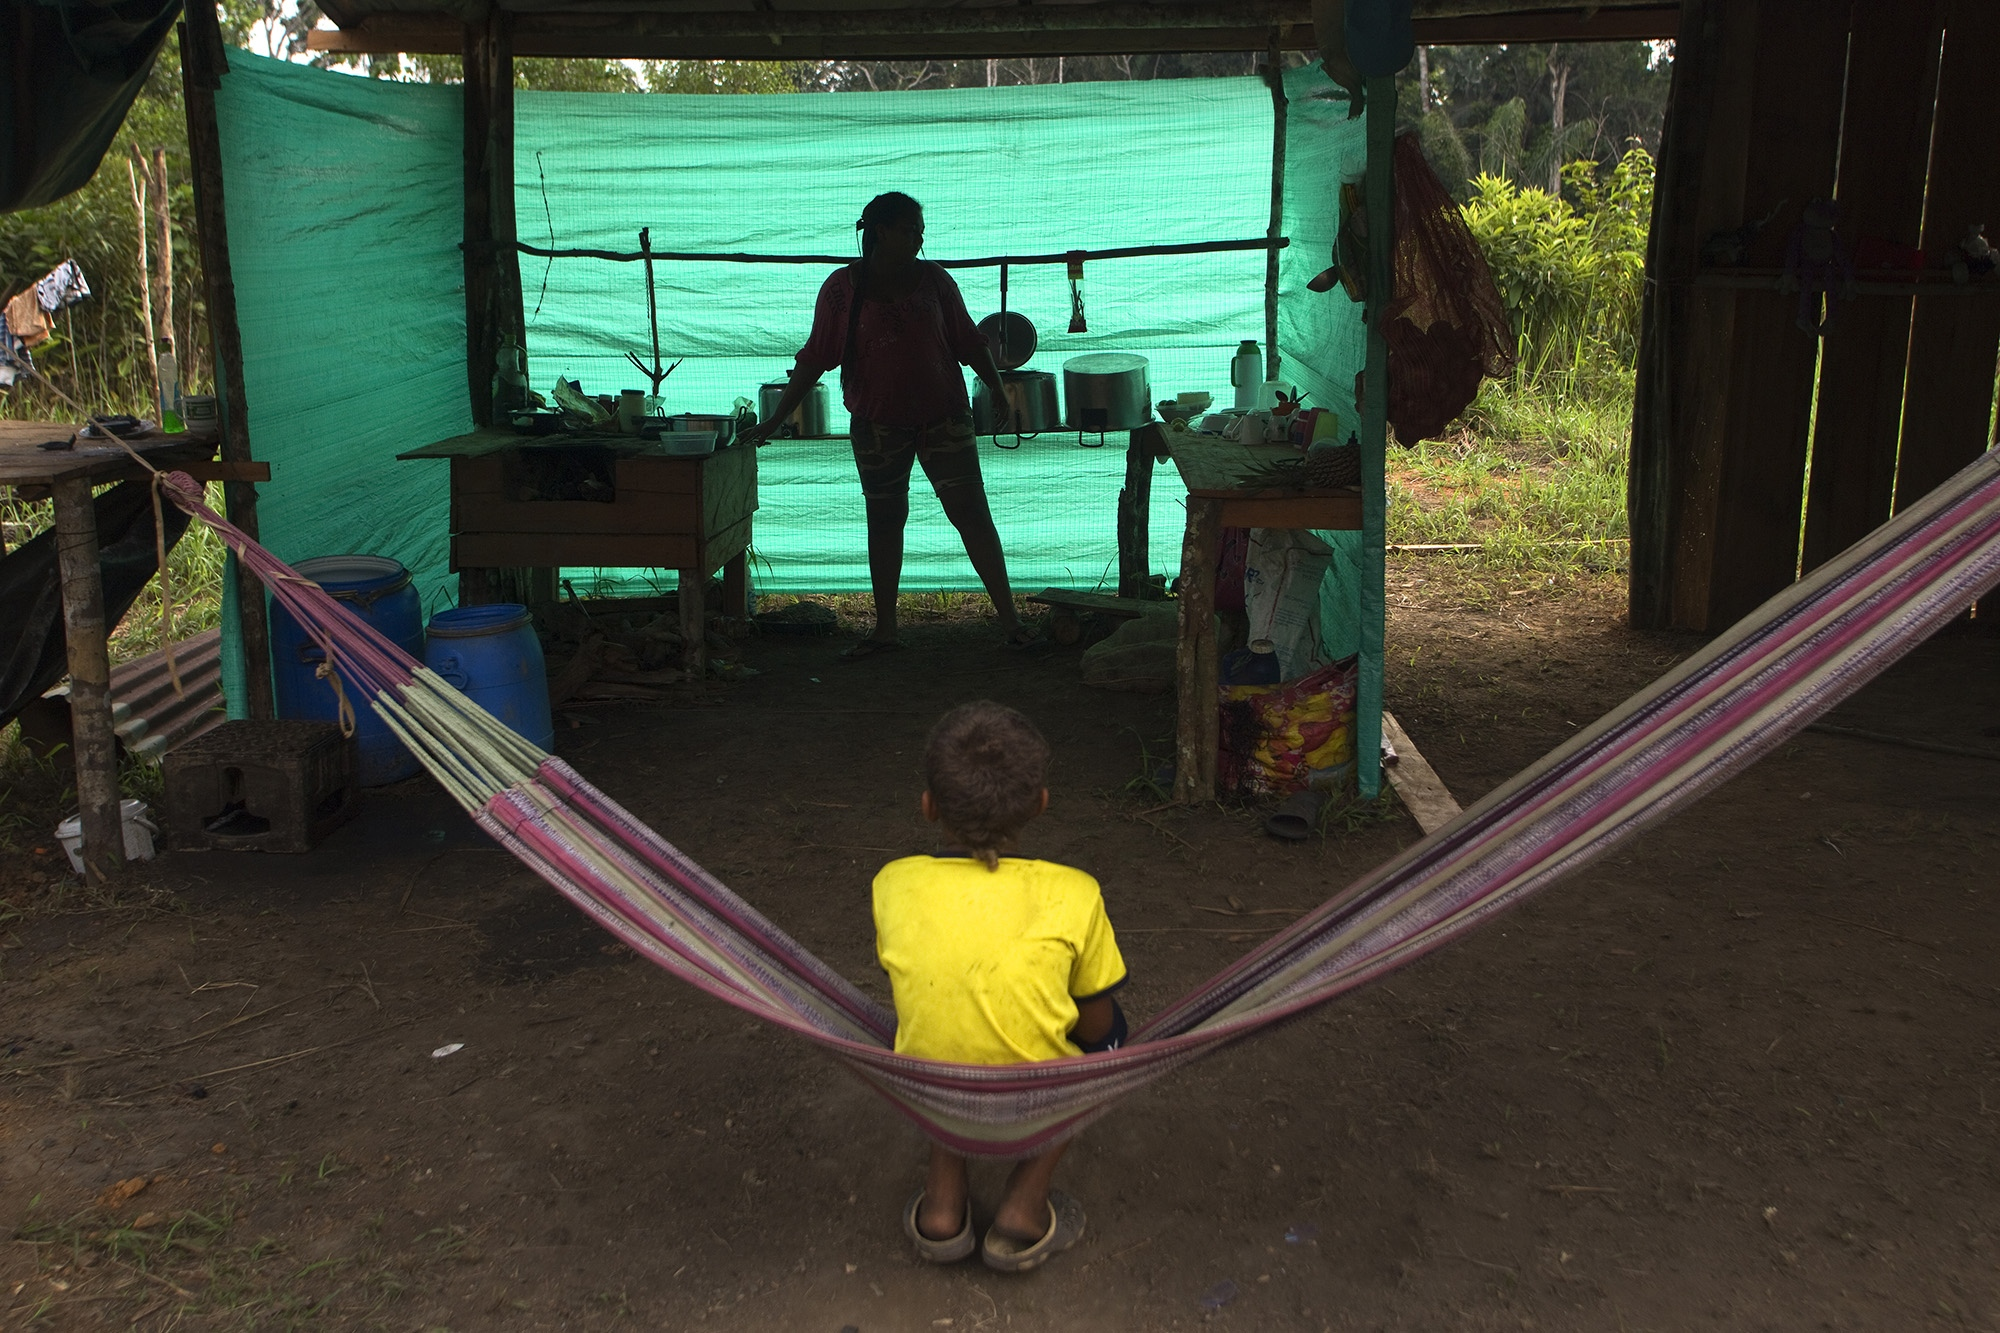 Aida Rodriguez Sanchez and his son Estiven on his farm in the La Paz, Guaviare. Aida survives picking coca leaves, as the great majority of inhabitants of this area of Colombia.